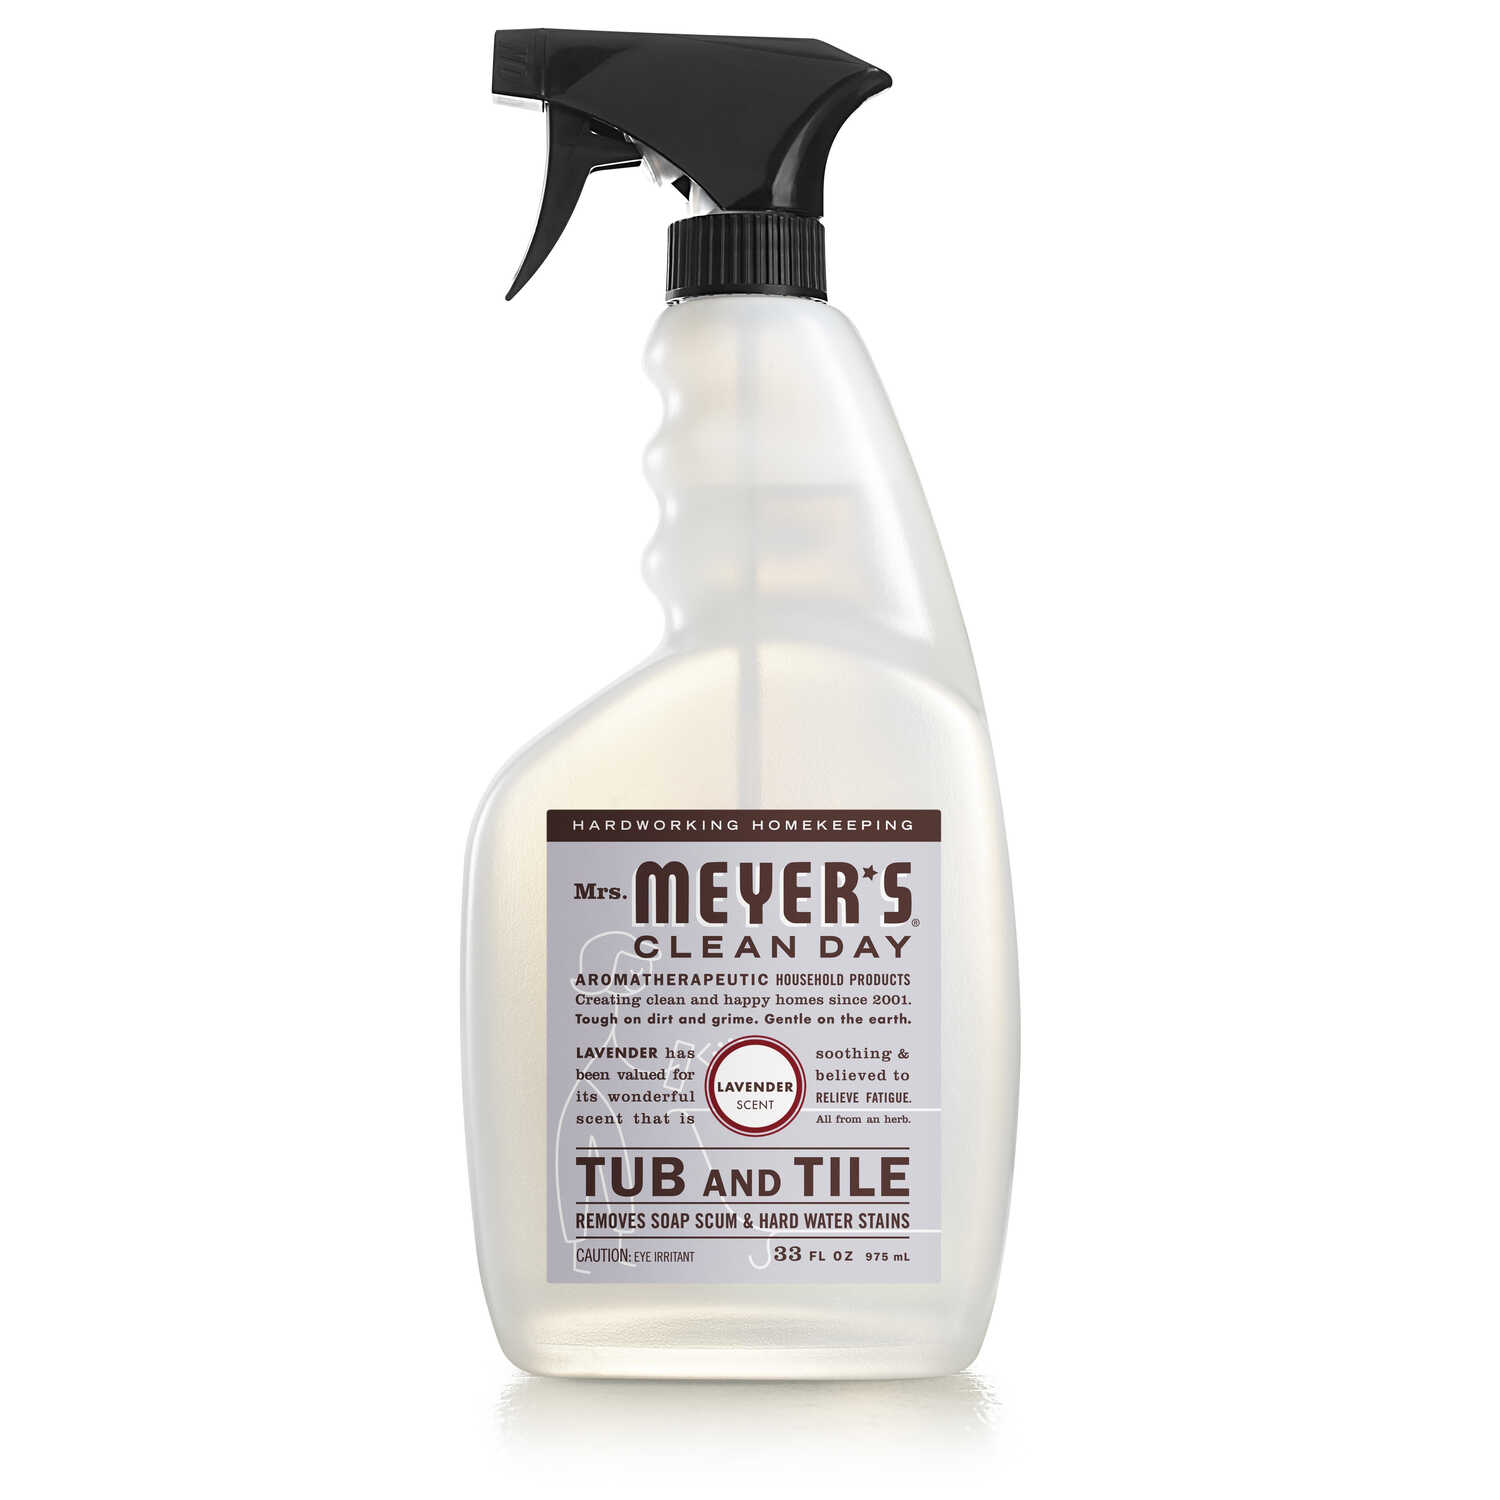 Mrs. Meyer's  Clean Day  Lavender Scent Tub and Tile Cleaner  33 oz. Trigger Spray Bottle